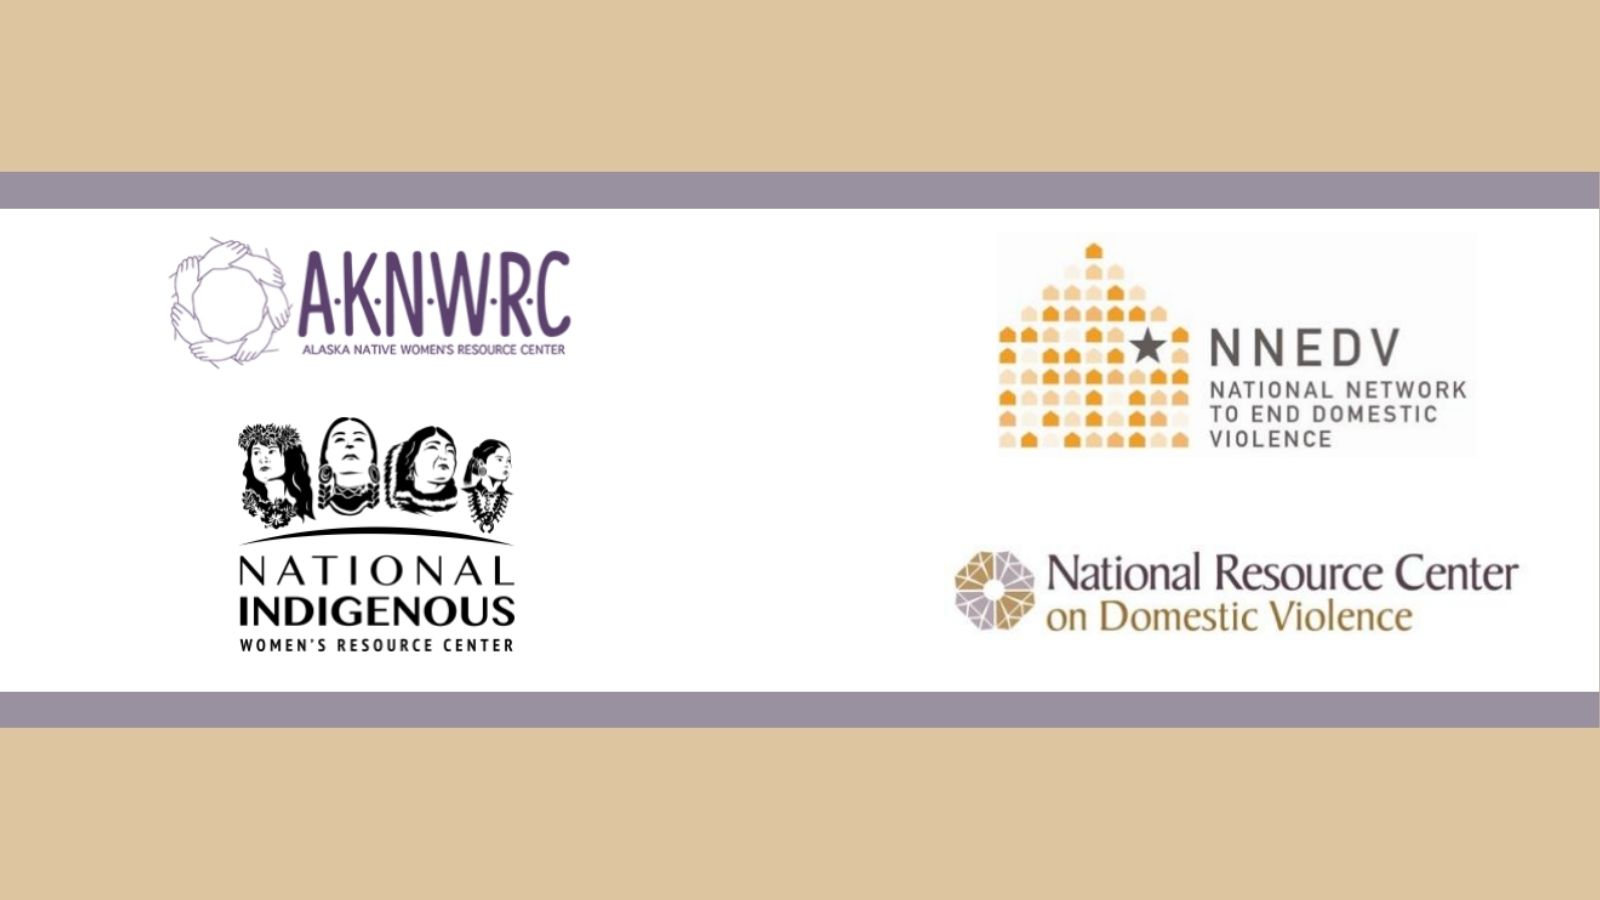 Tan background with logos of Alaska Native Women's Resource Center and National Indigenous Women's Resource Center on left, and logos of National Network to End Domestic Violence and National Resource Center on Domestic Violence on left, against a white background with light purple border.